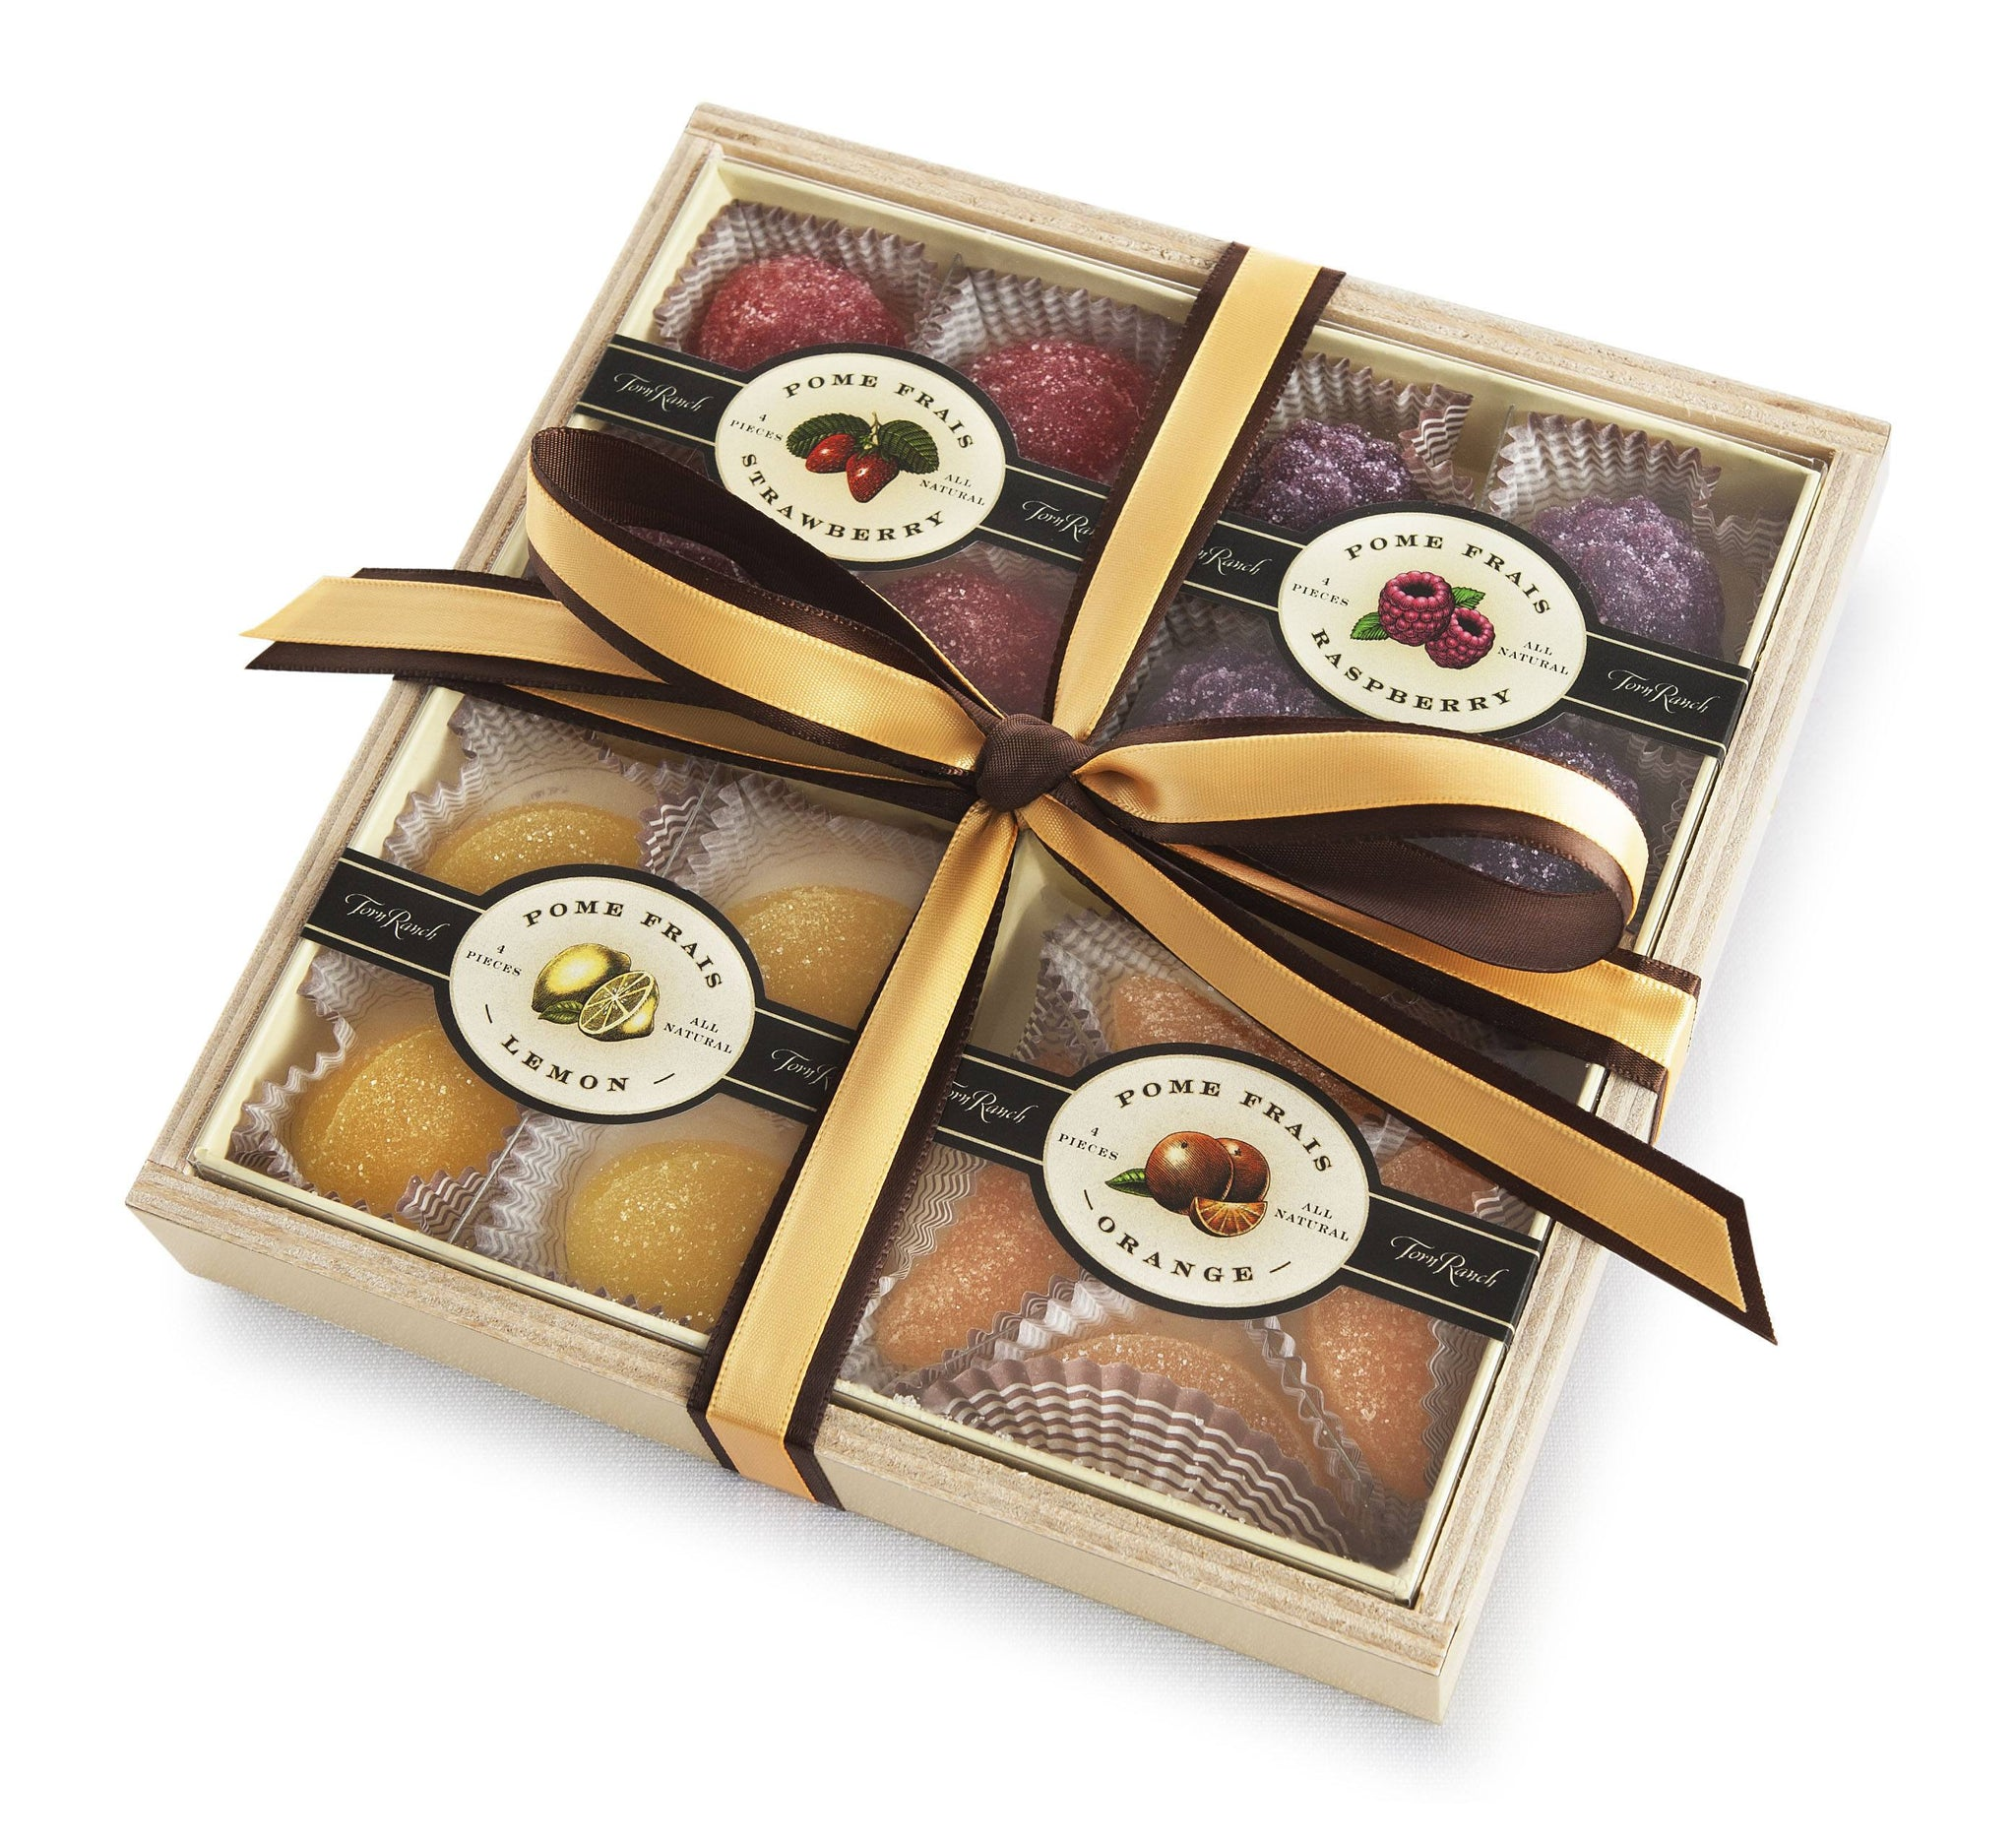 Pome Frais Gift Tray in Unique Gifts & Gift Baskets- Package wrapped with a bow